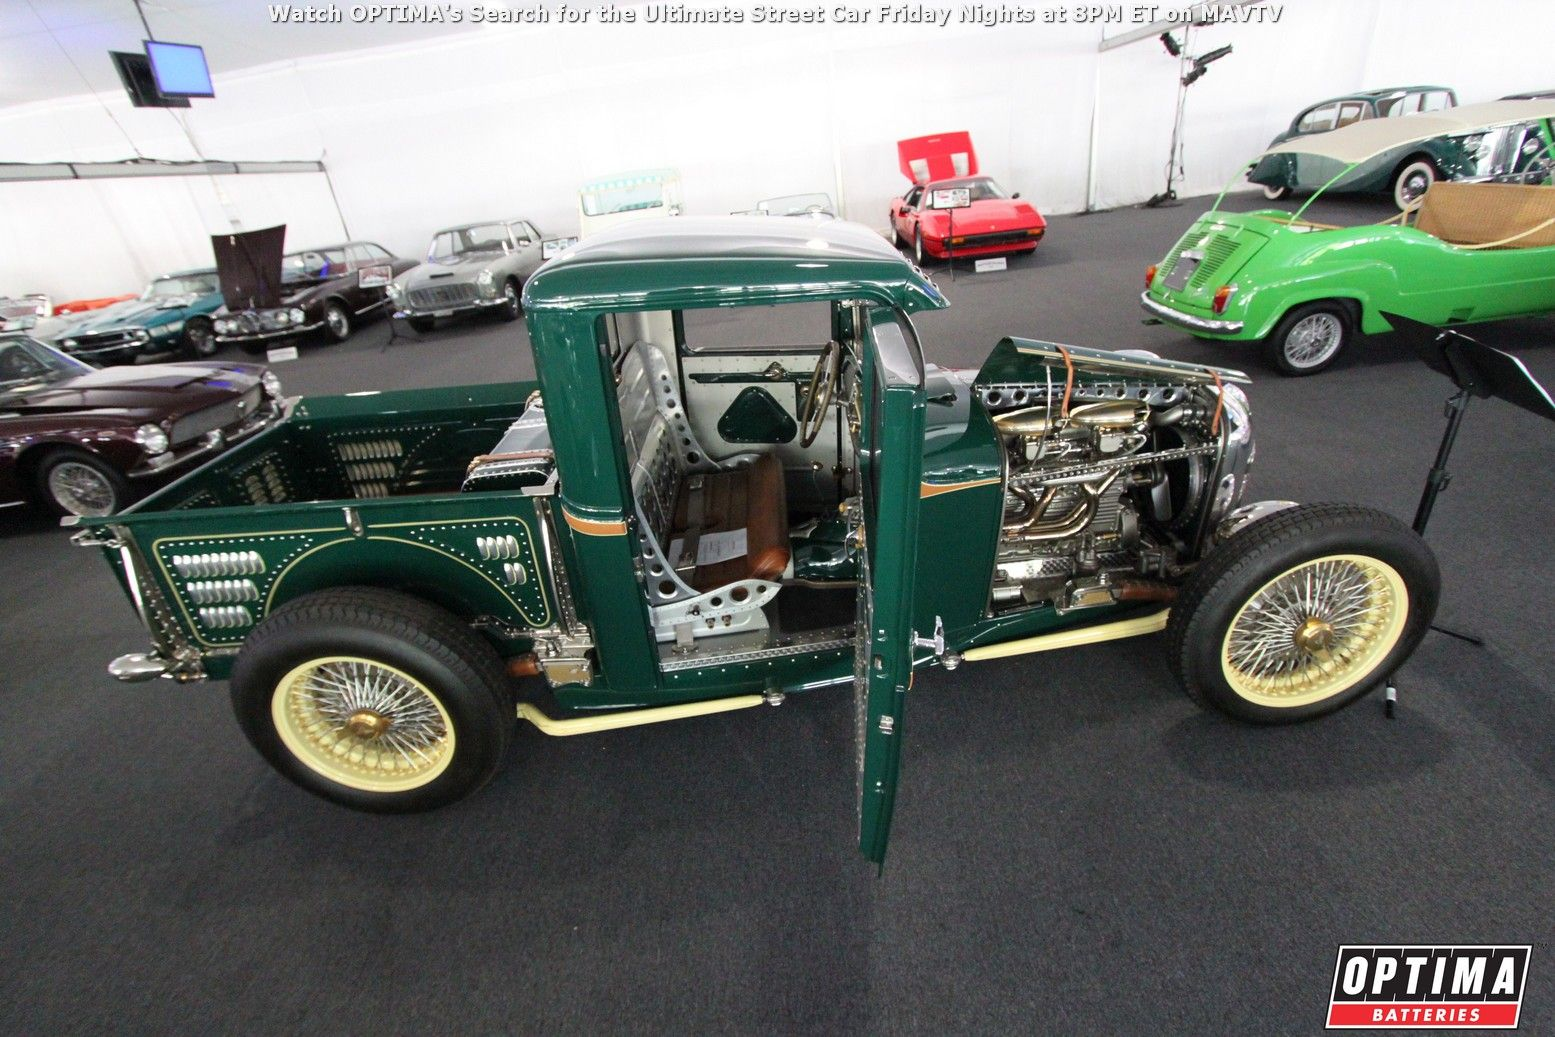 The 1932 Ford Miller Hauler Special Hot Rod at the Motostalgia ...